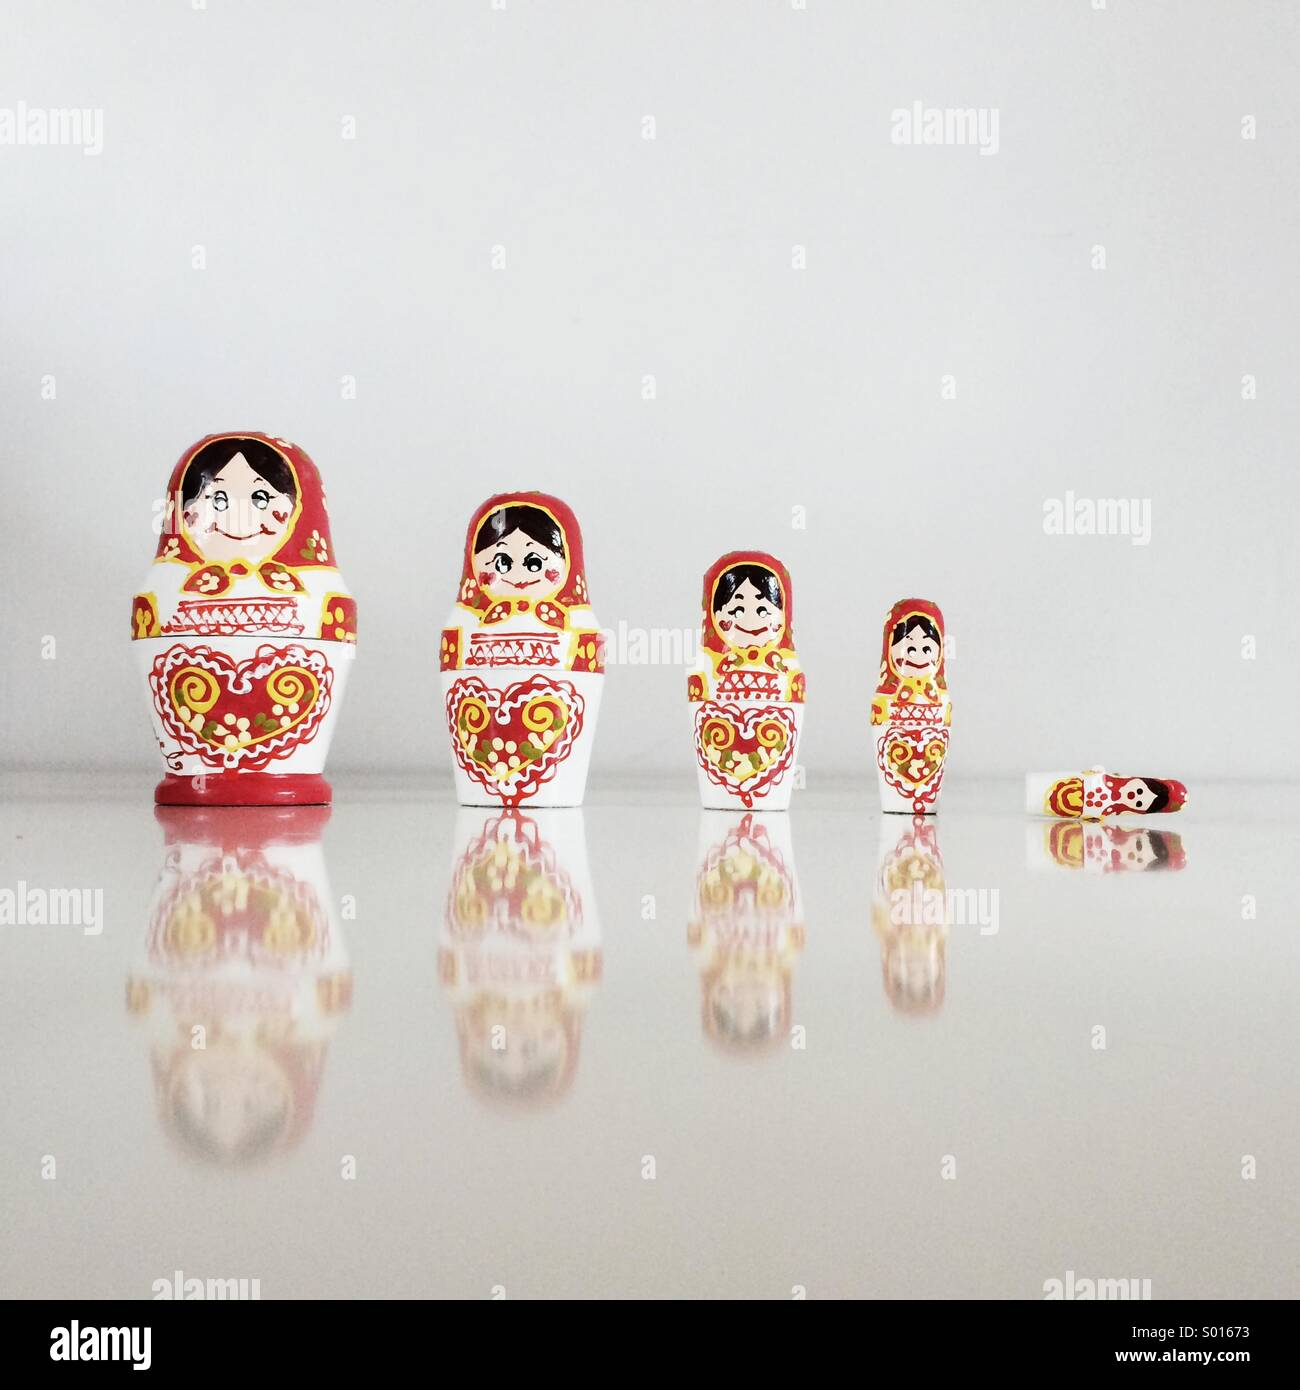 Russian dolls - Stock Image